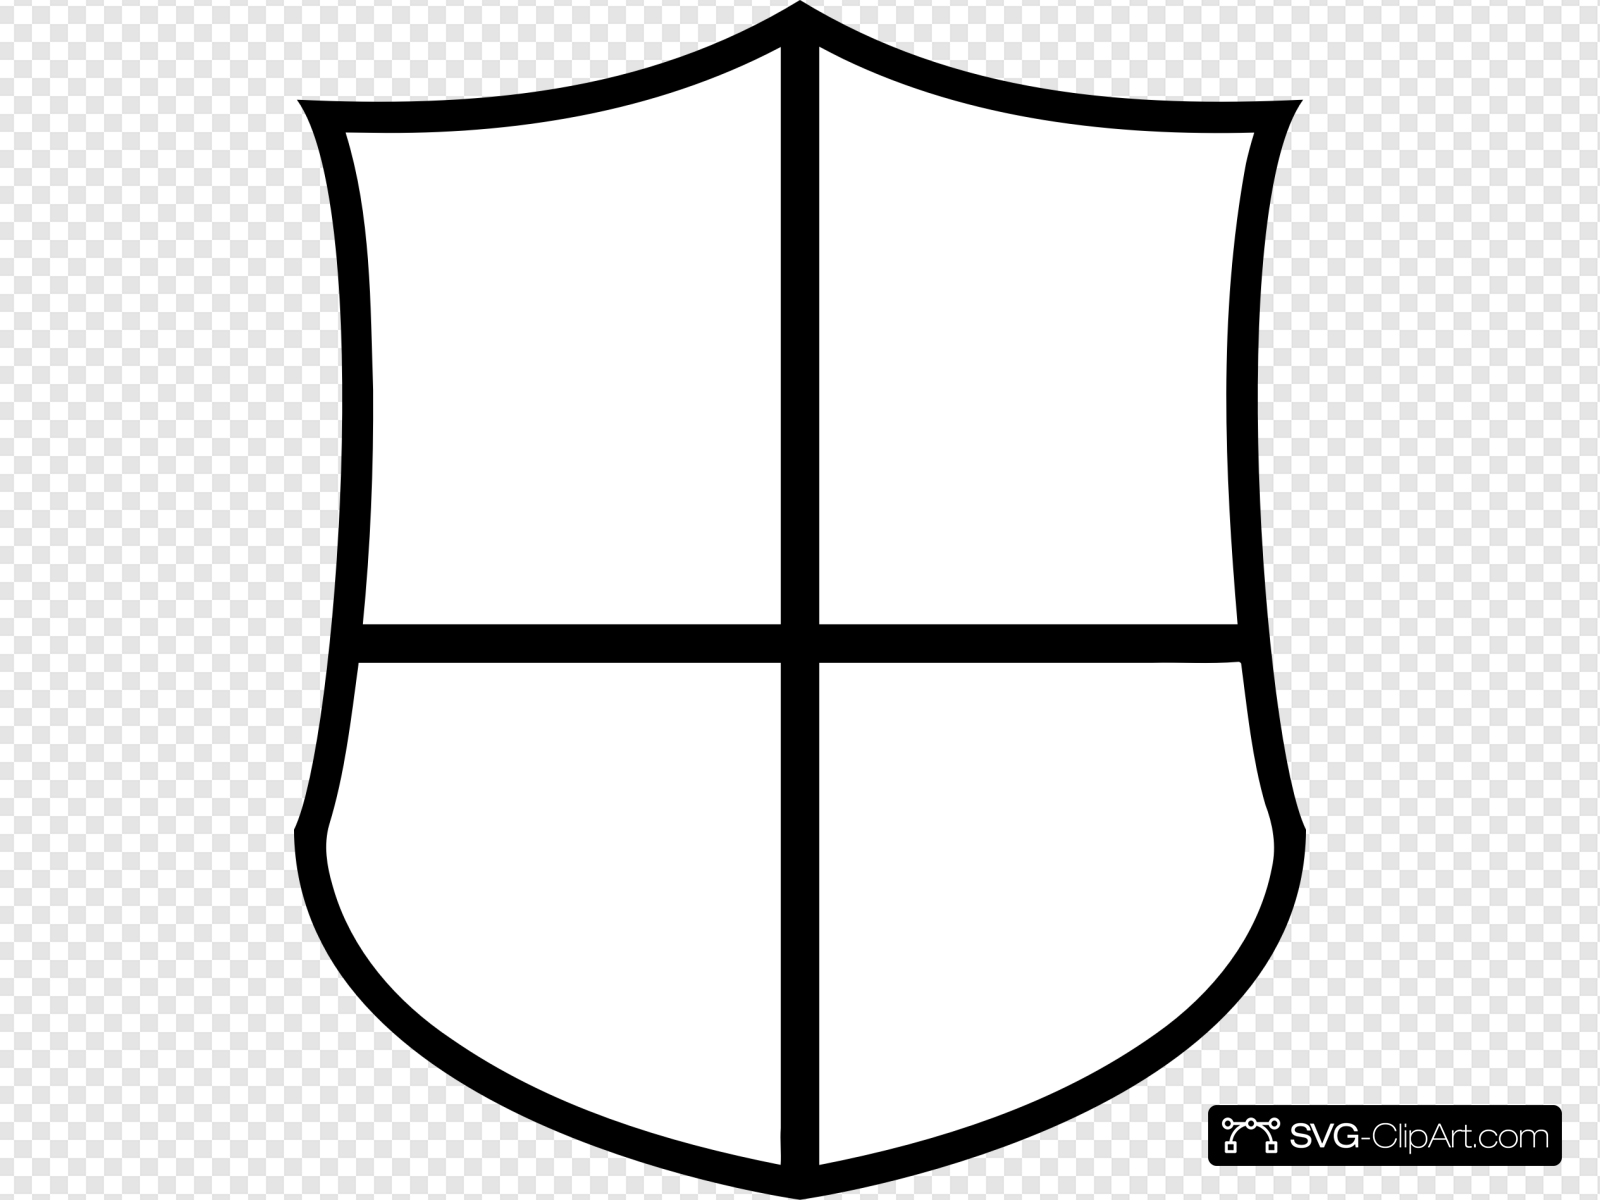 Shield Outline Clip art, Icon and SVG.